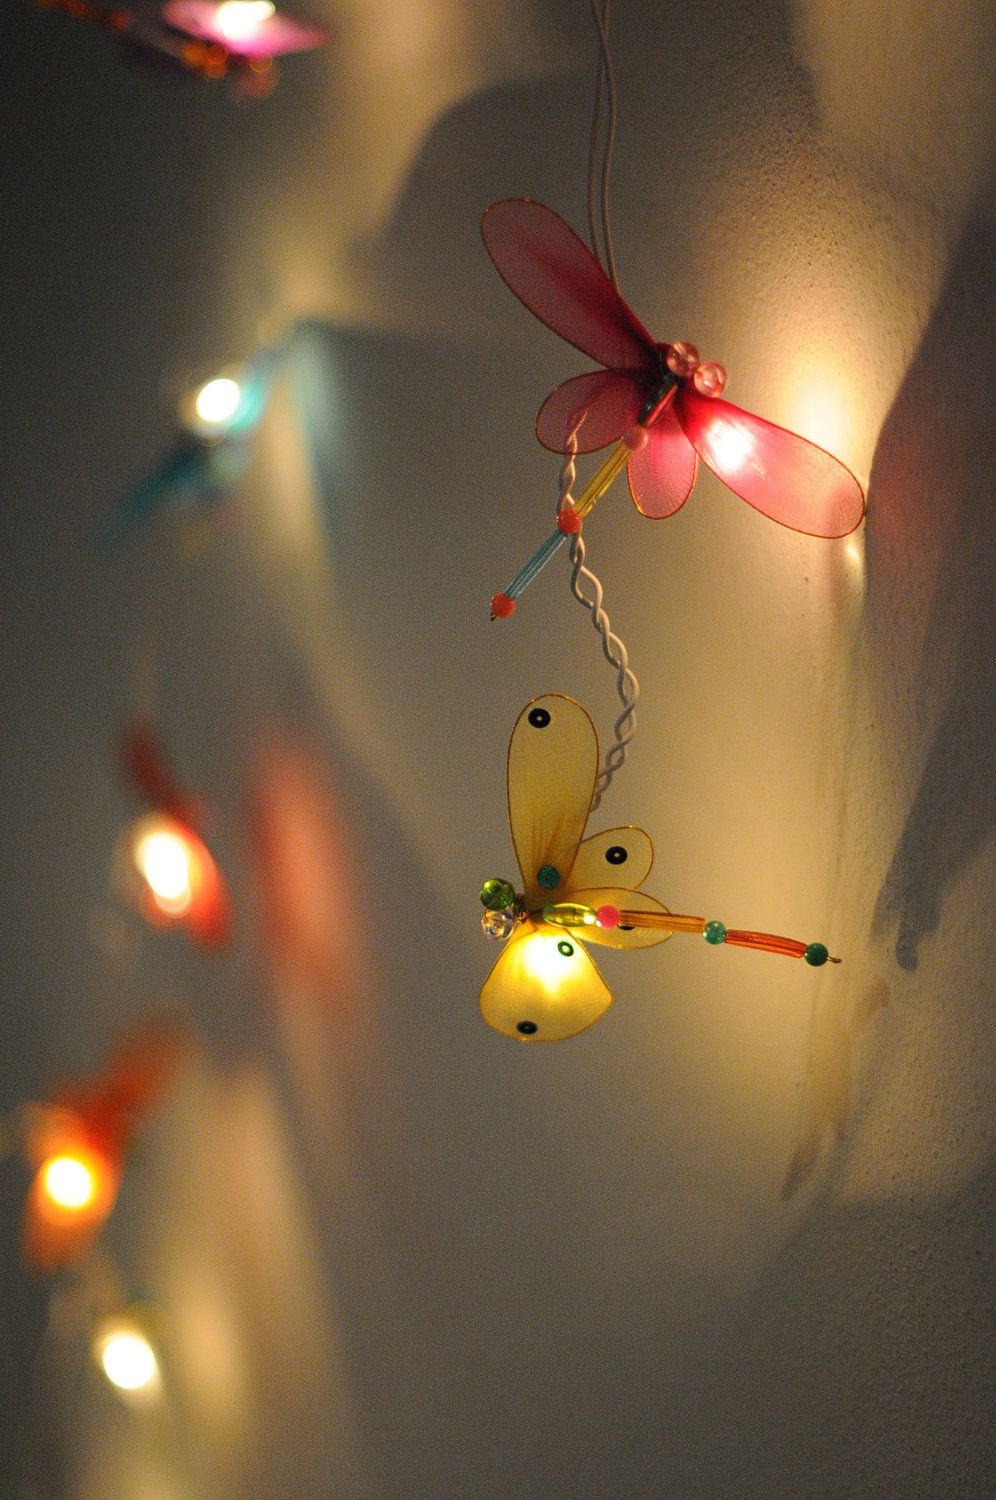 20 x Dragonfly bead handmade kid room toy display bedroom light lantern lamp  family decoration light